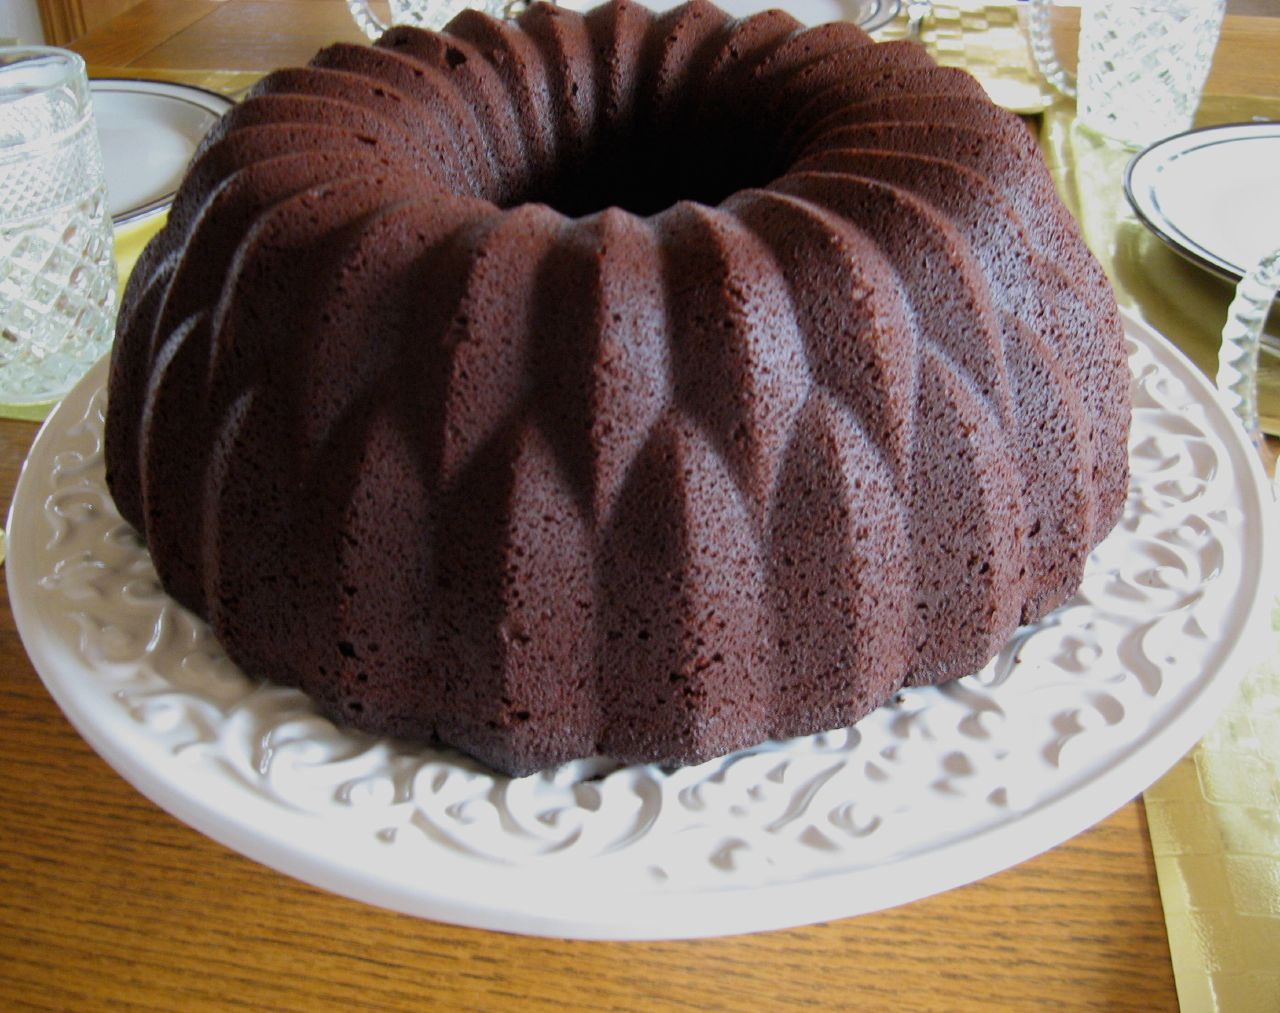 How Do You Cool A Bundt Cake